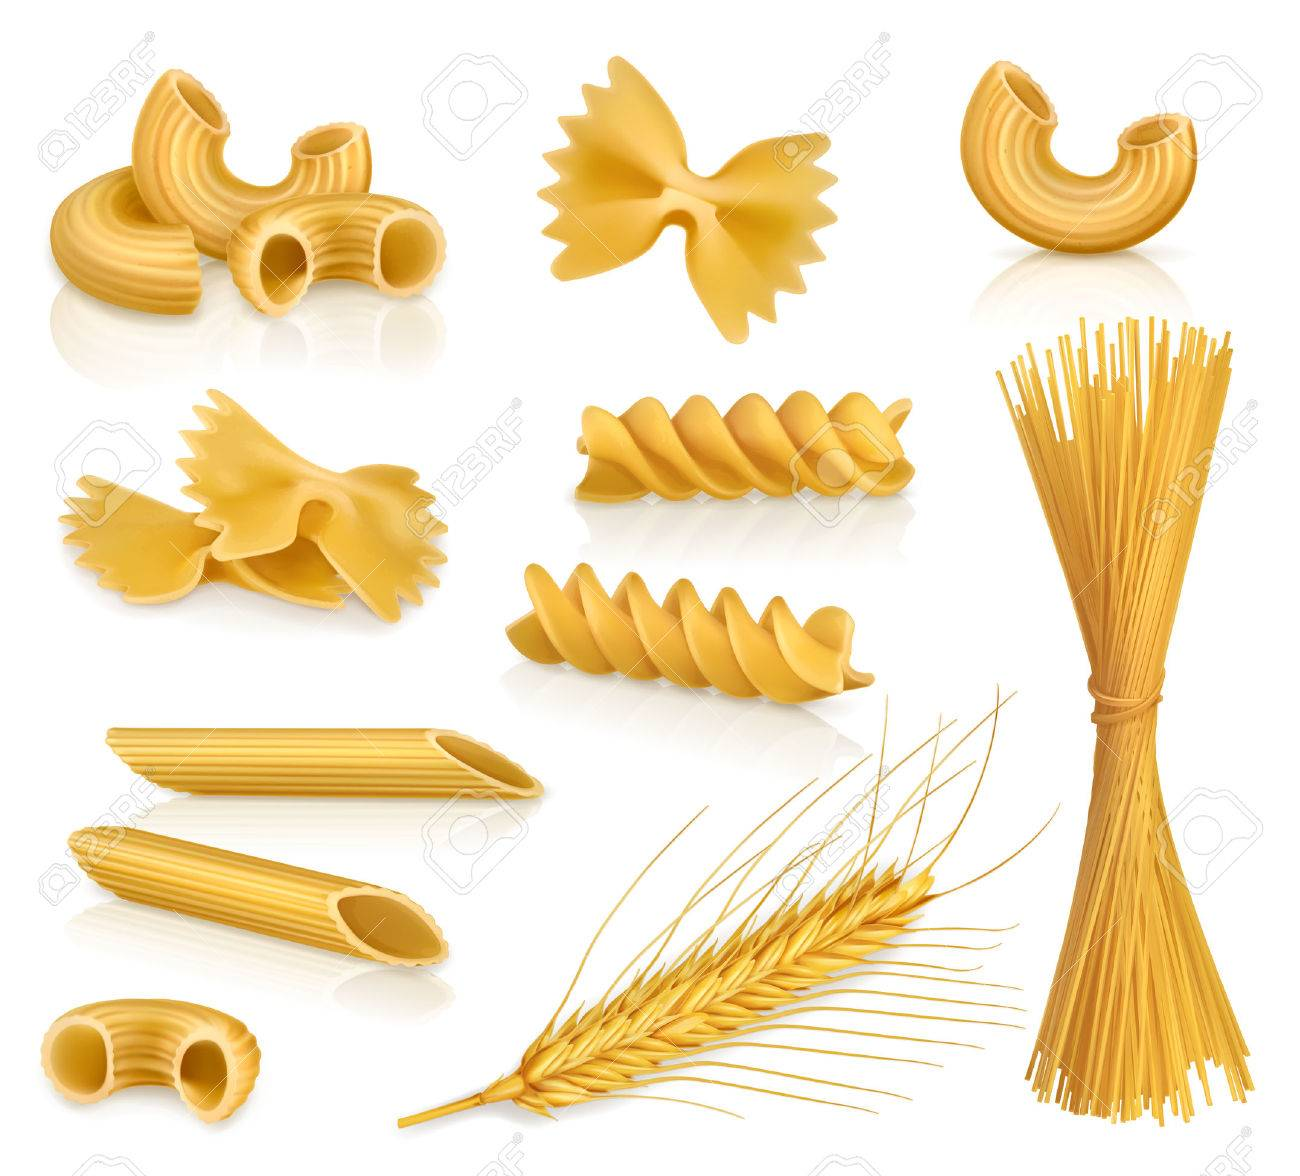 7,380 Spaghetti Stock Vector Illustration And Royalty Free ...